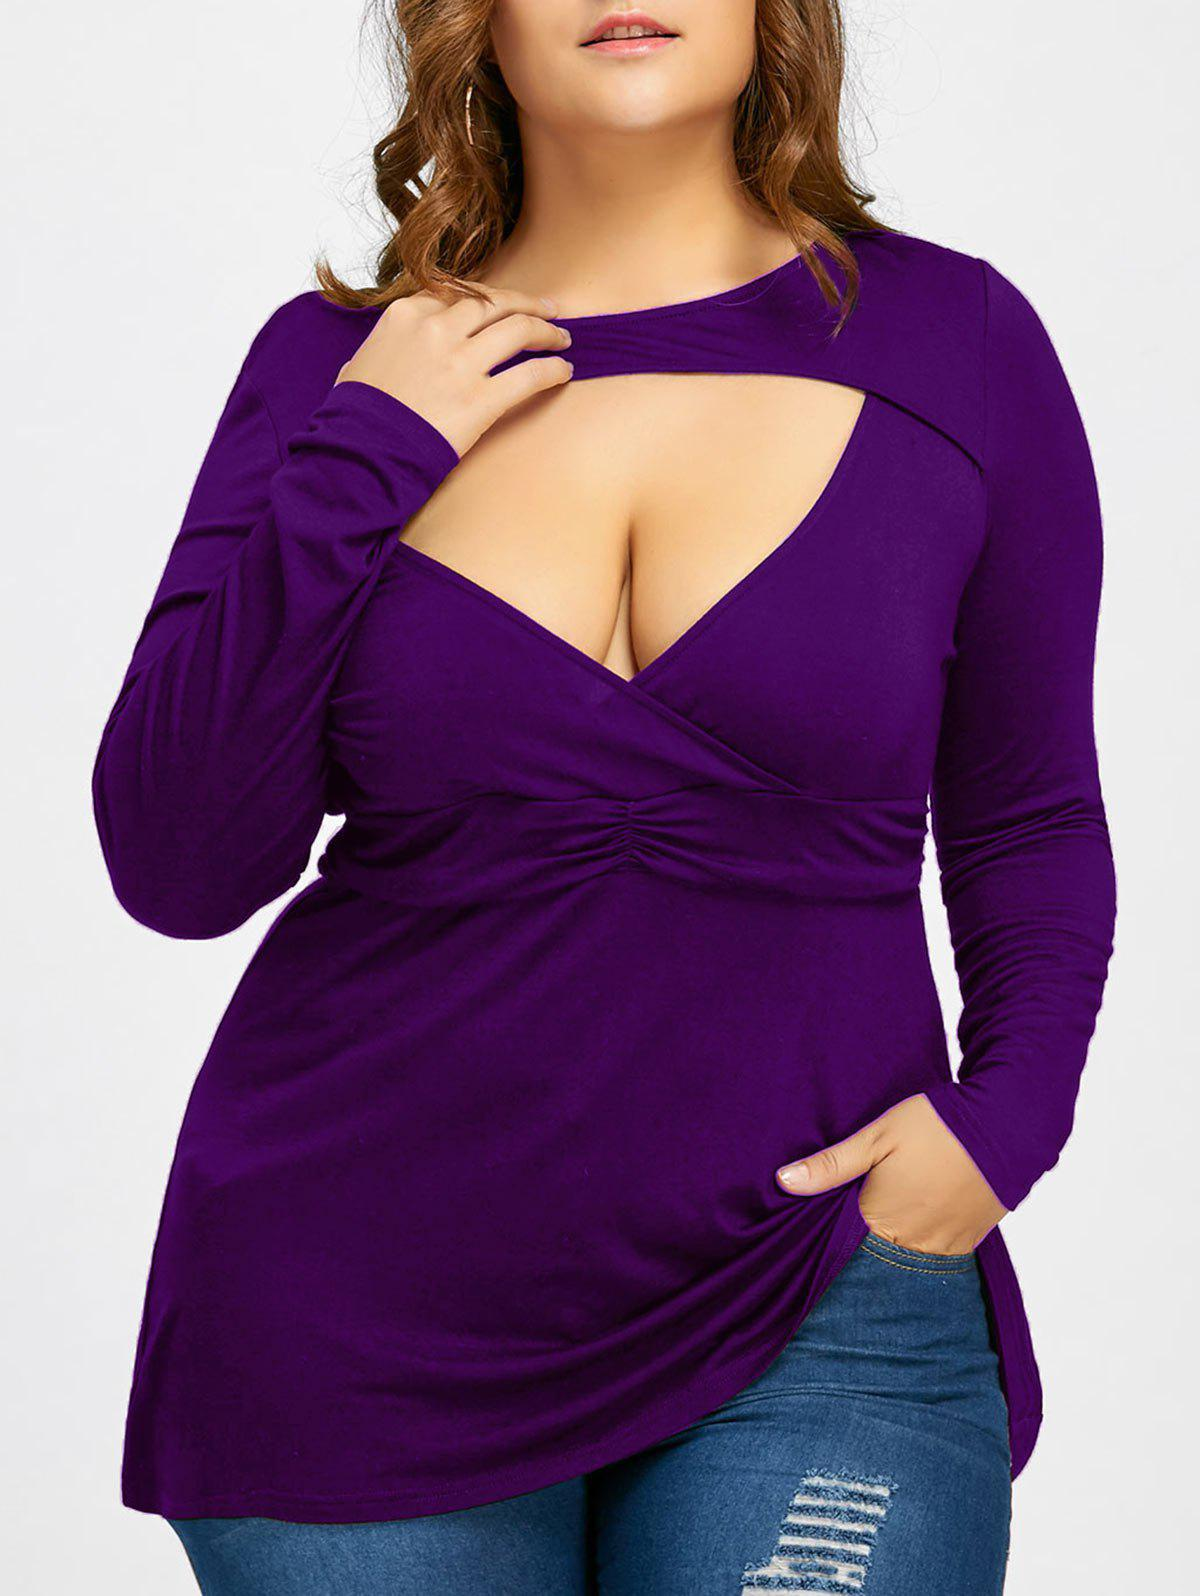 Empire Waist Plus Size Cut Out T-shirt от Dresslily.com INT